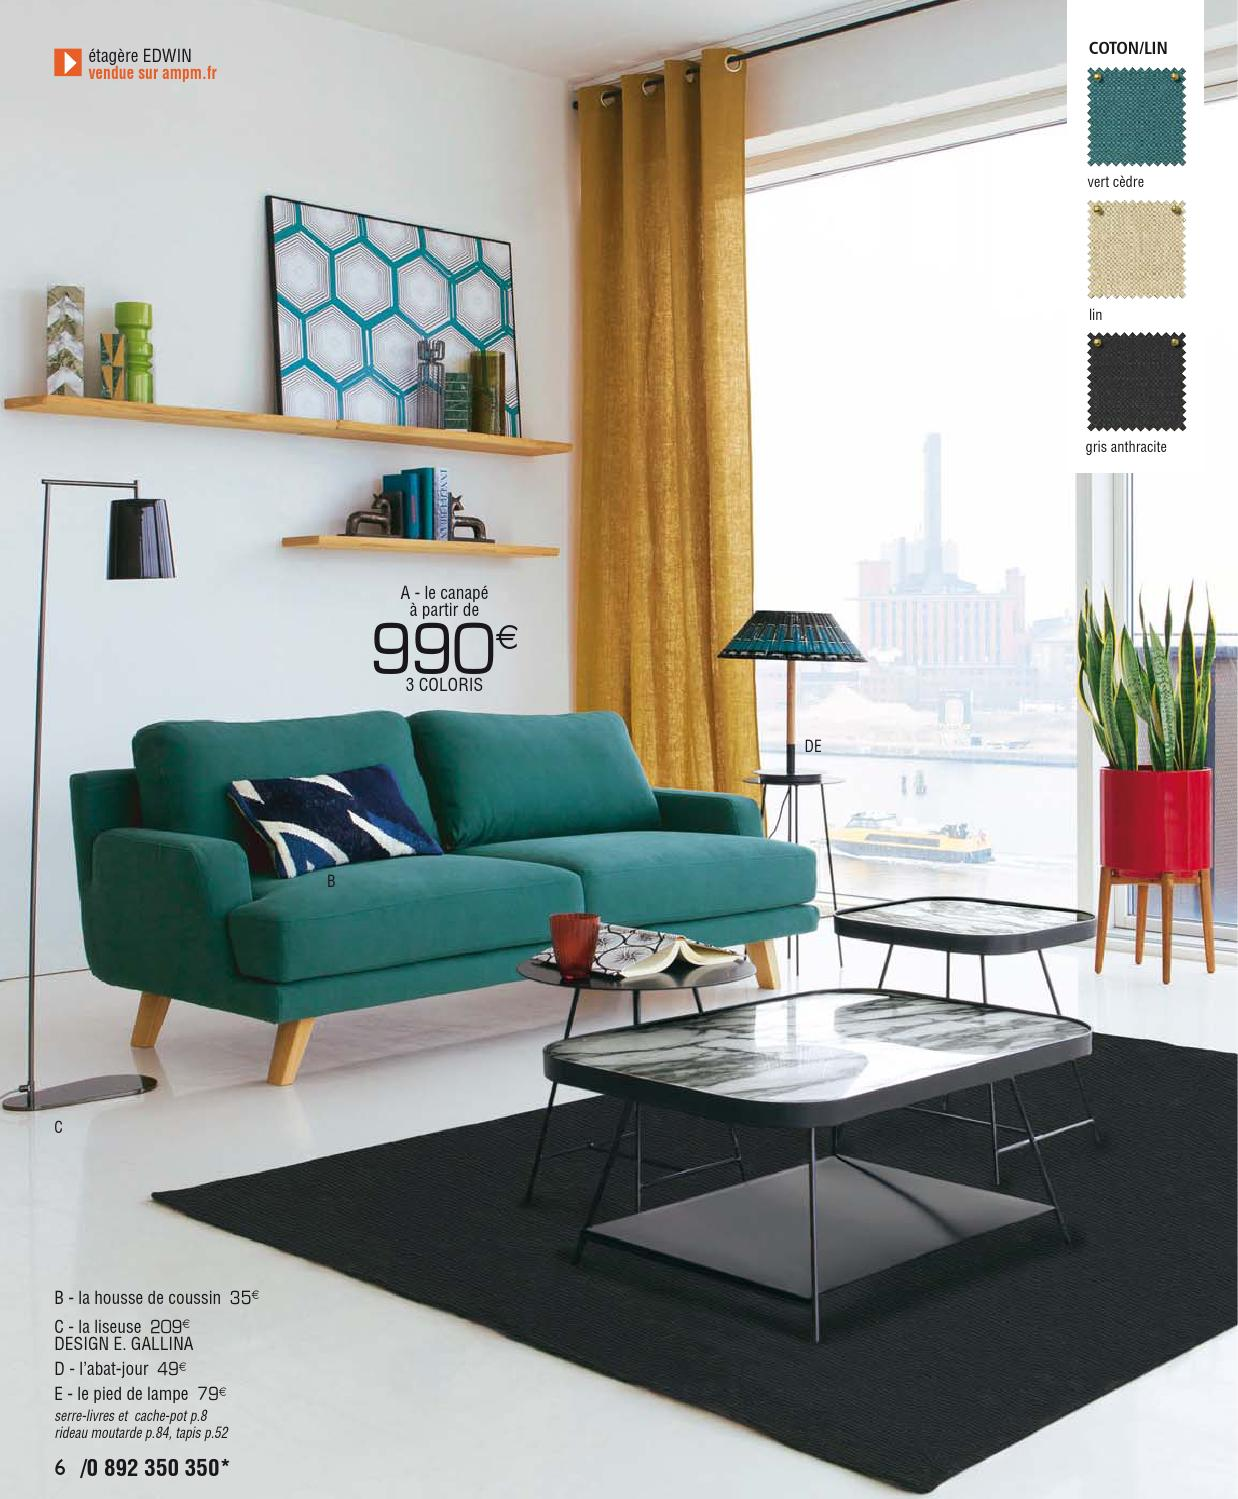 Ampm Tapis Ampm Catalogue Automne Hiver 2015 By Bestarchidesign Issuu